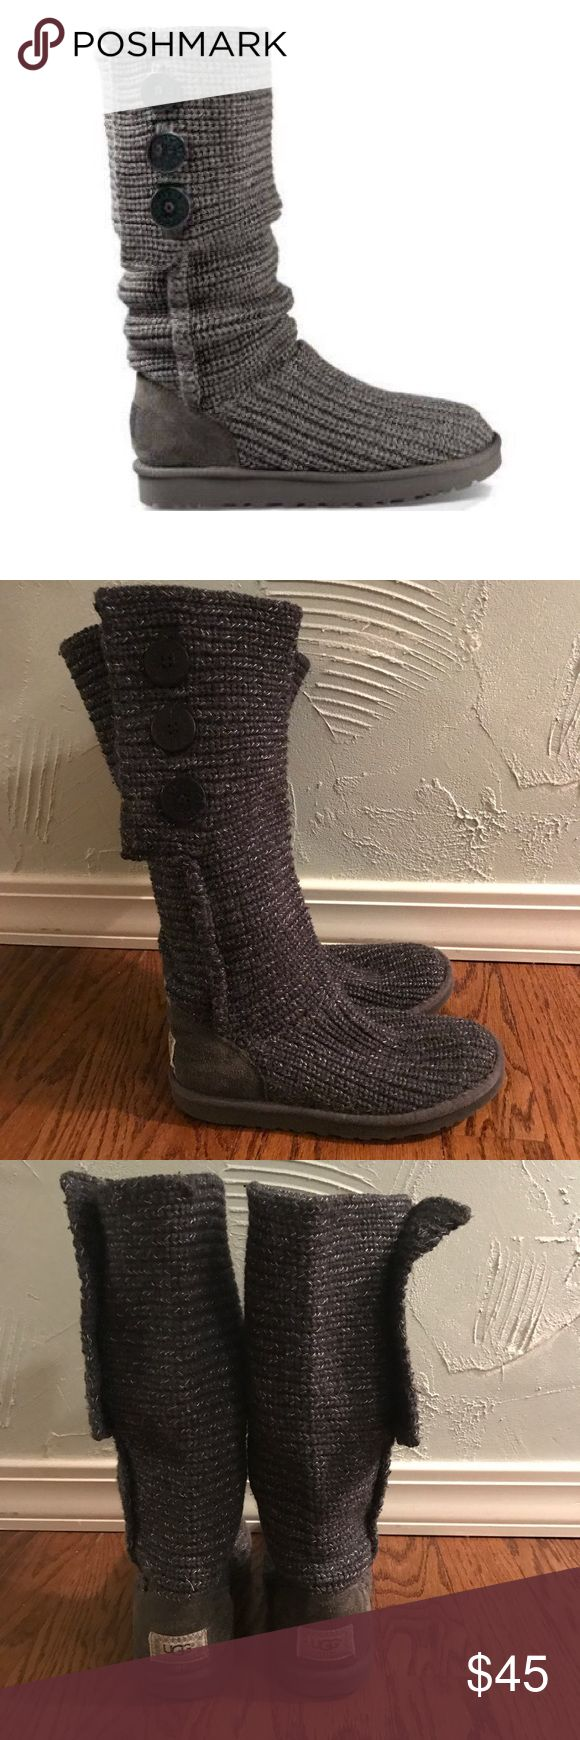 UGG Classic Cardy Grey Knit Boots 3 Button detail! In good used condition lots of life left! UGG Shoes Winter & Rain Boots